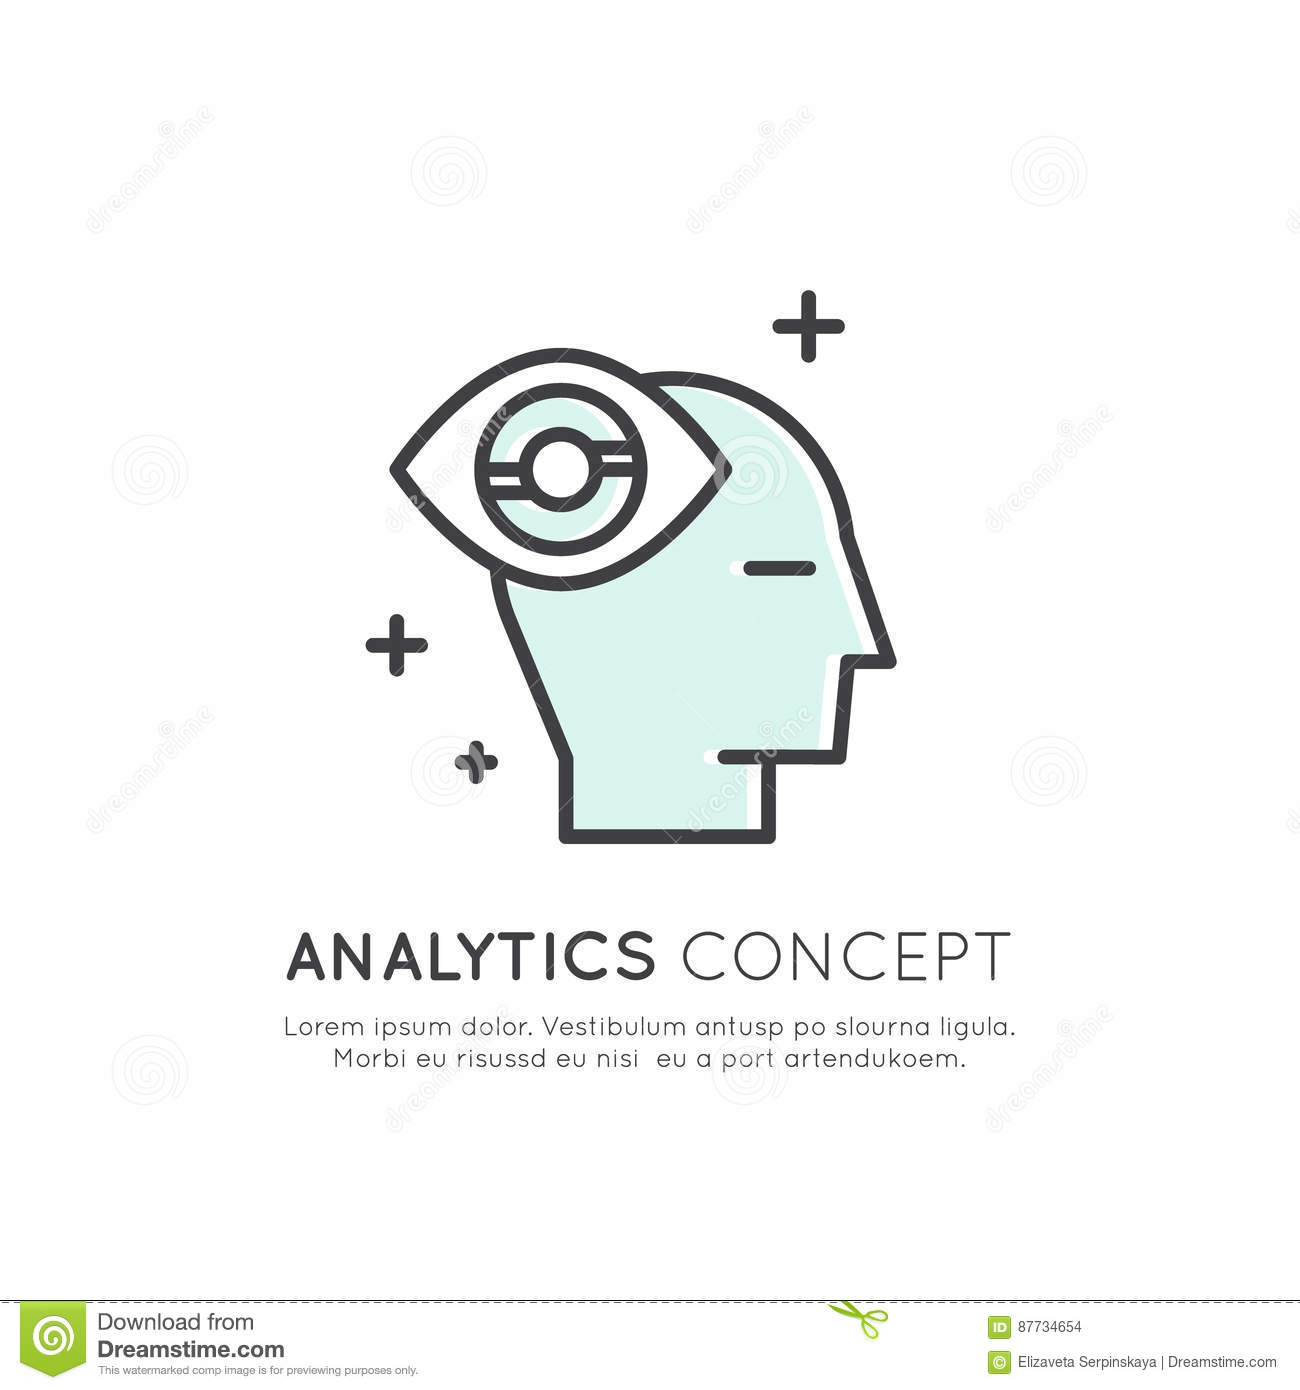 Illustration of Analytics, Management, Business Thinking Skill, Decision Making, Time Management, Memory, Sitemap, Brainstorming a